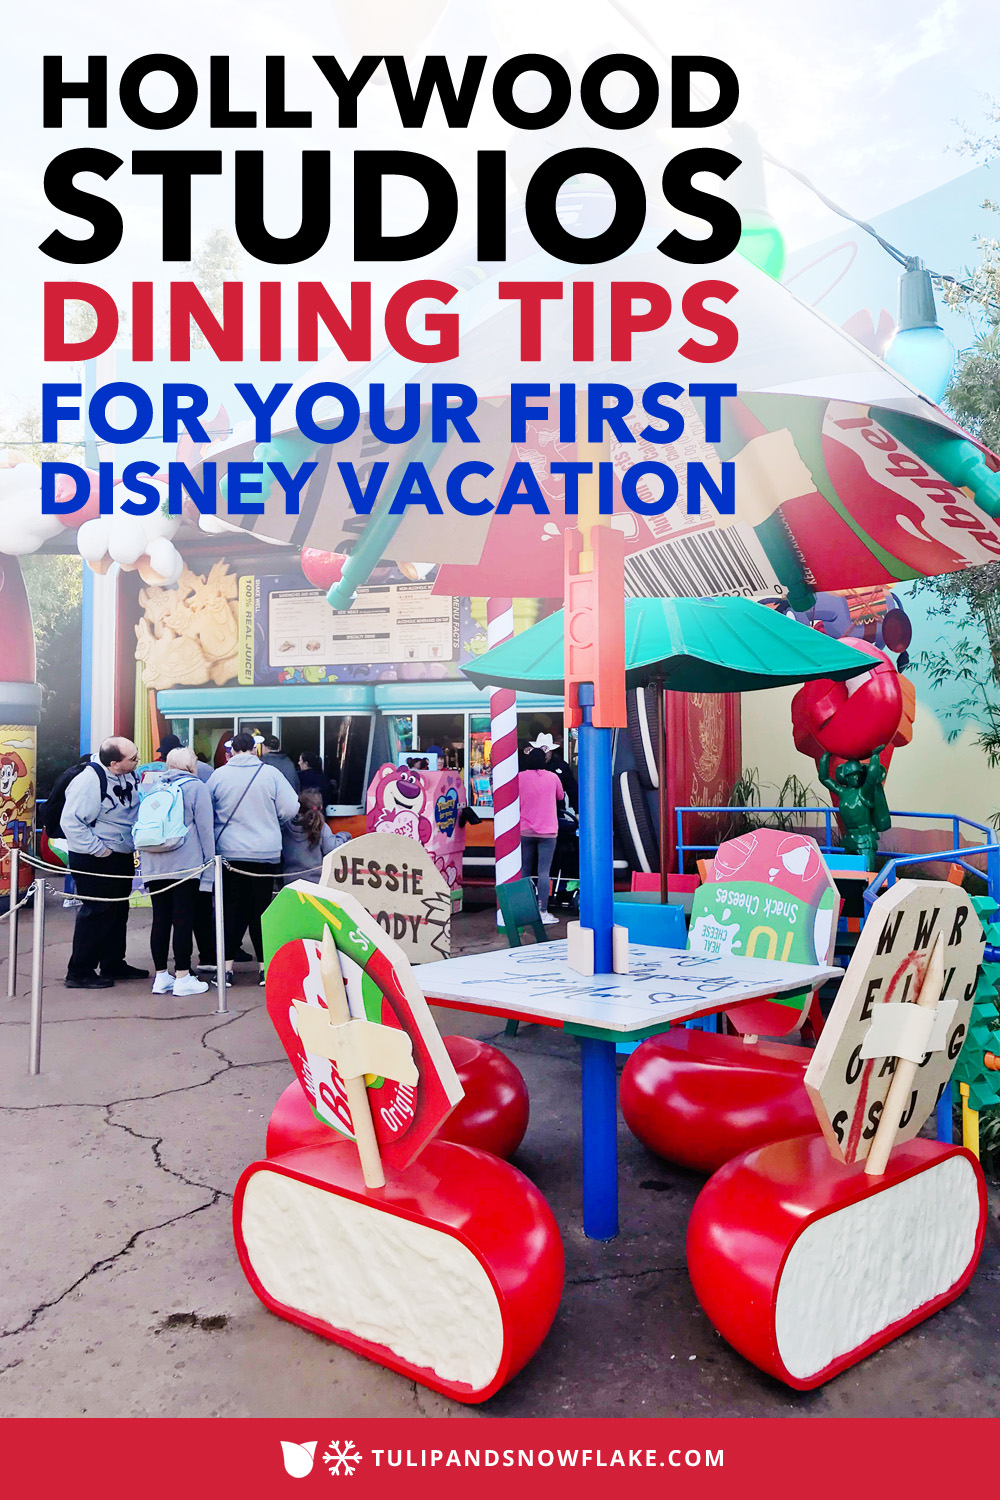 Disney Hollywood Studios Dining Tips